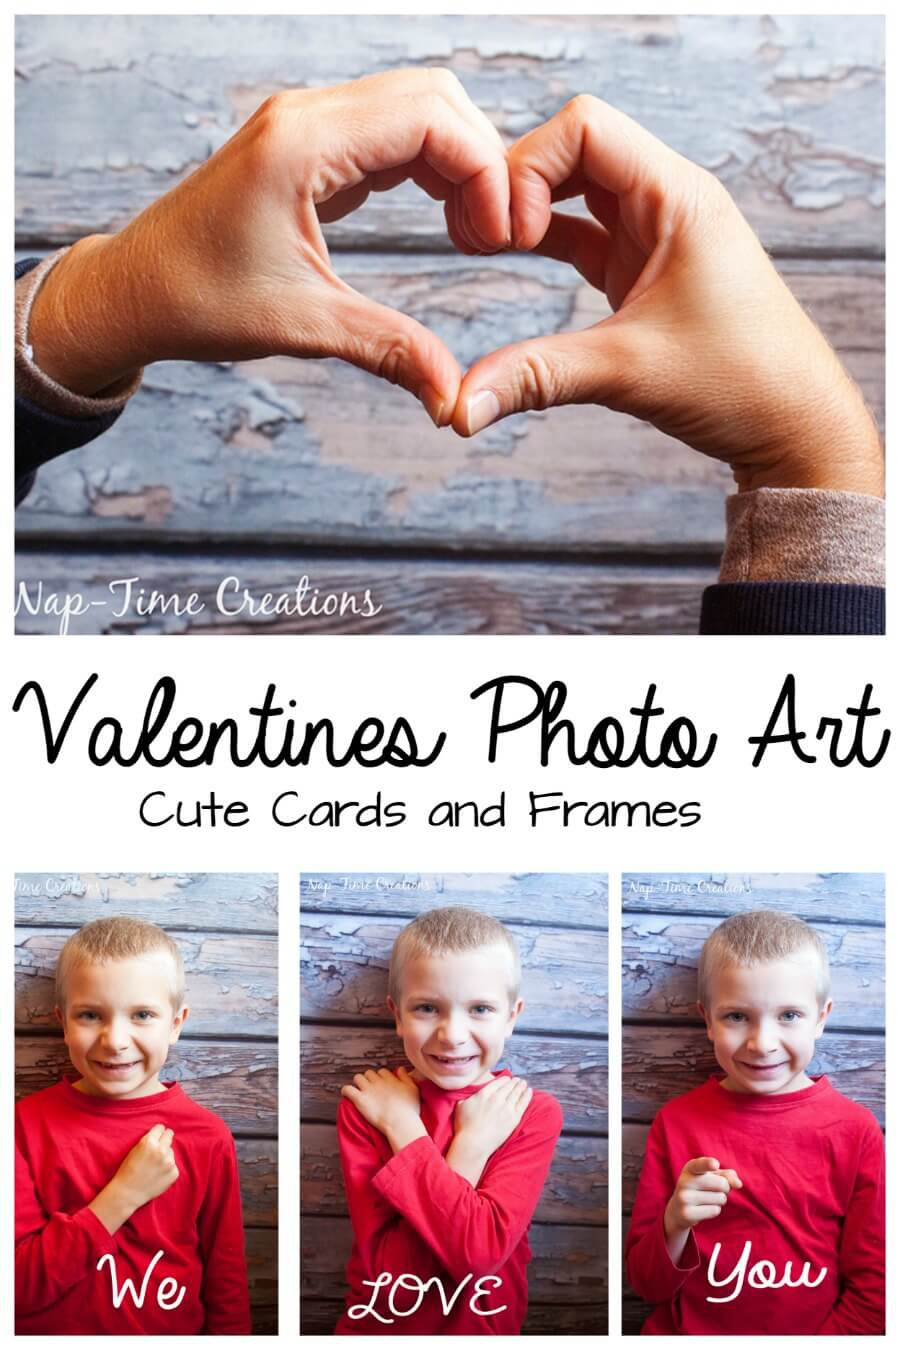 Valentines photo Art ideas for cards and frames from Nap-Time Creations - Copy